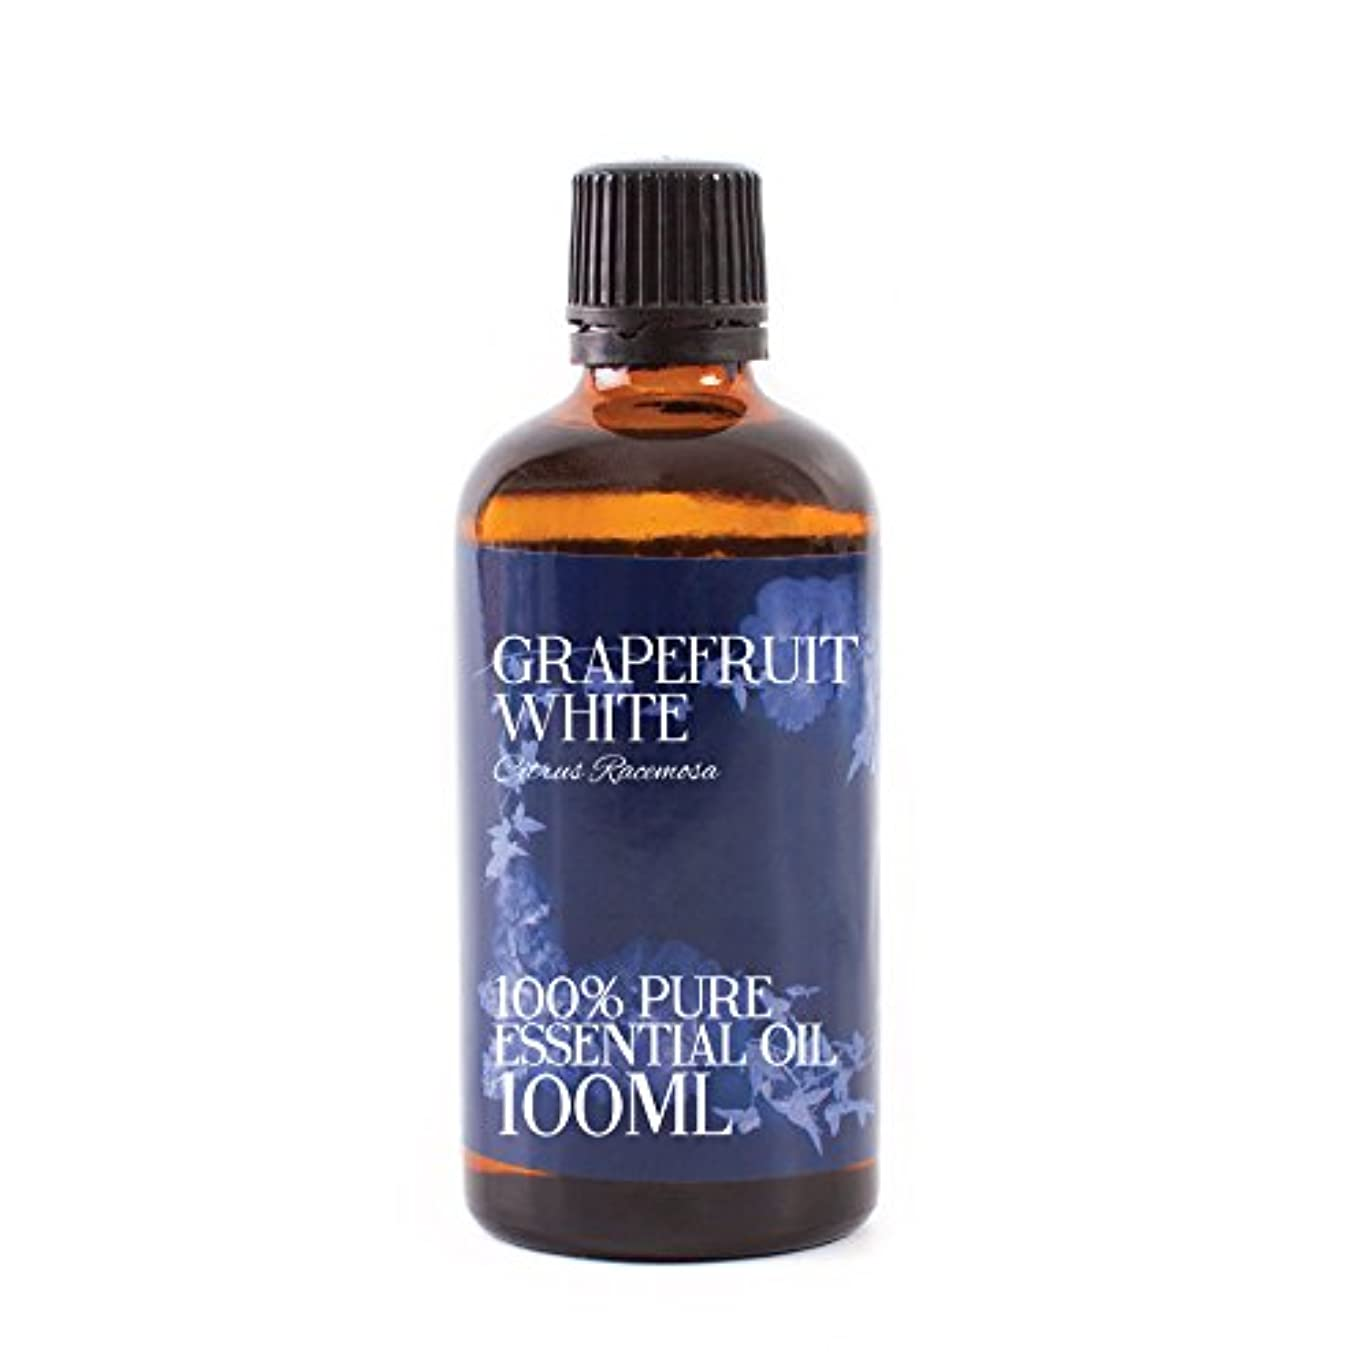 多様性首尾一貫した中間Mystic Moments | Grapefruit White Essential Oil - 100ml - 100% Pure